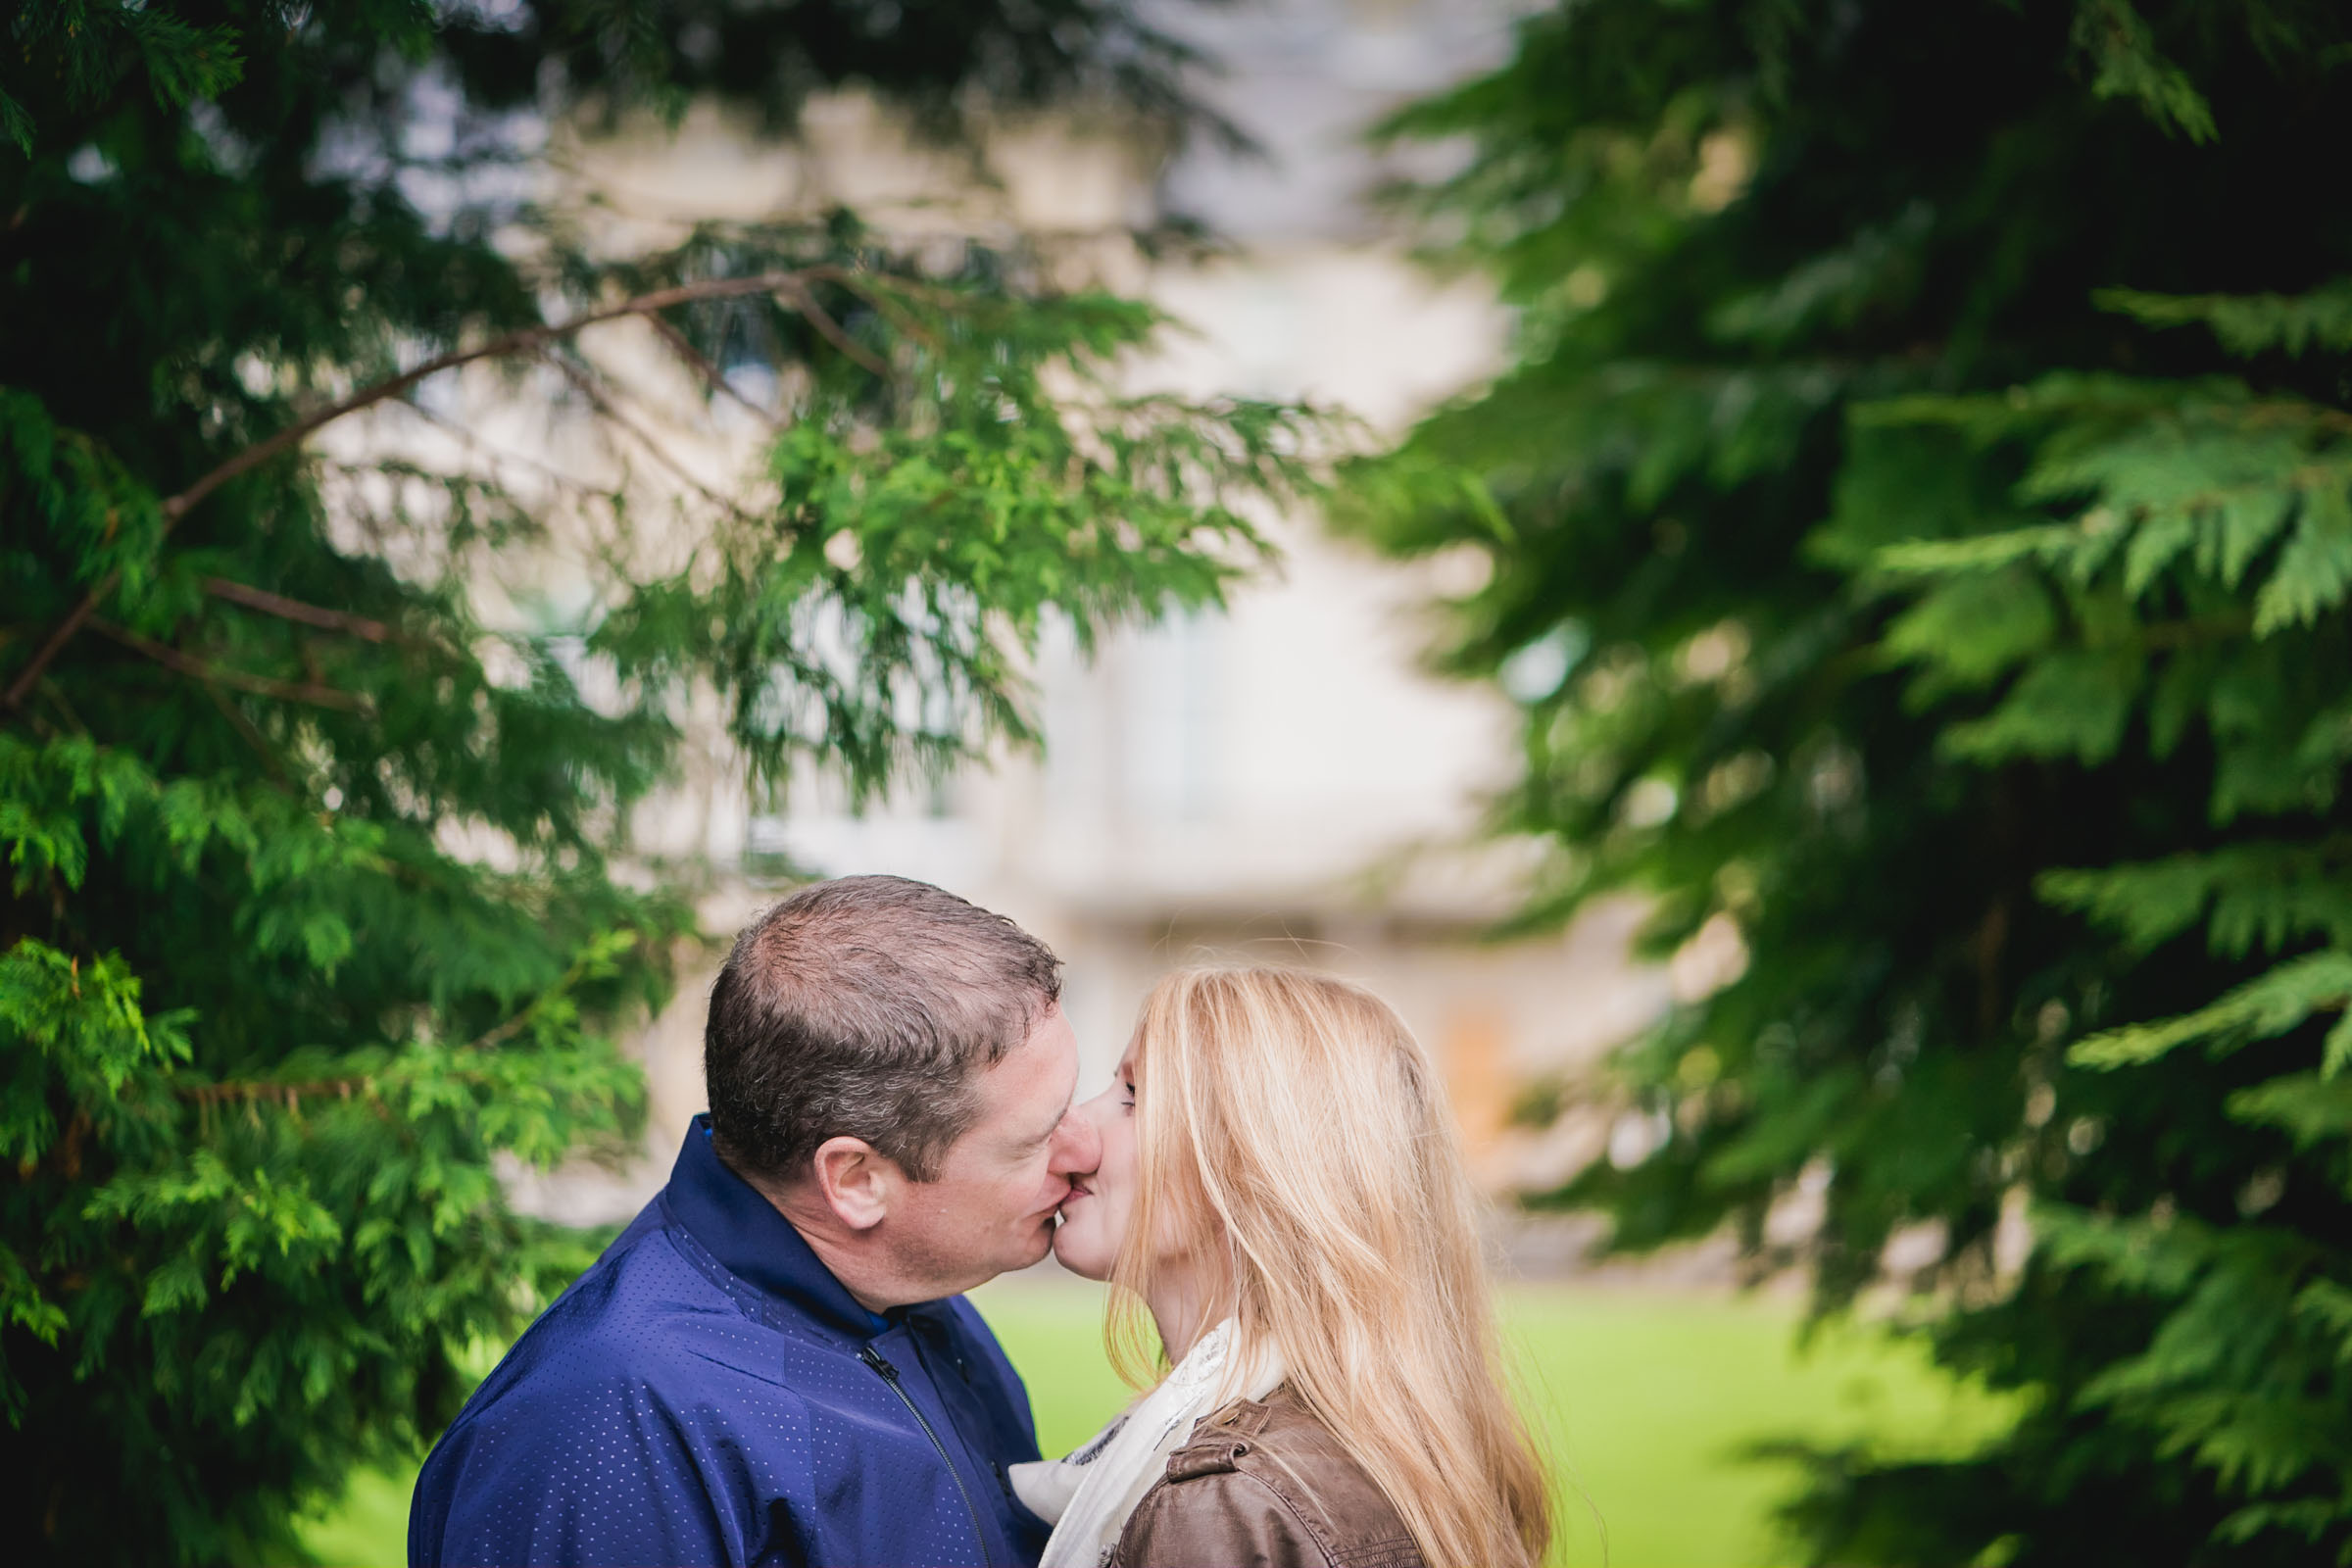 scottish-engagement-photography-elopement-dearlyphotography (23 of 45).jpg